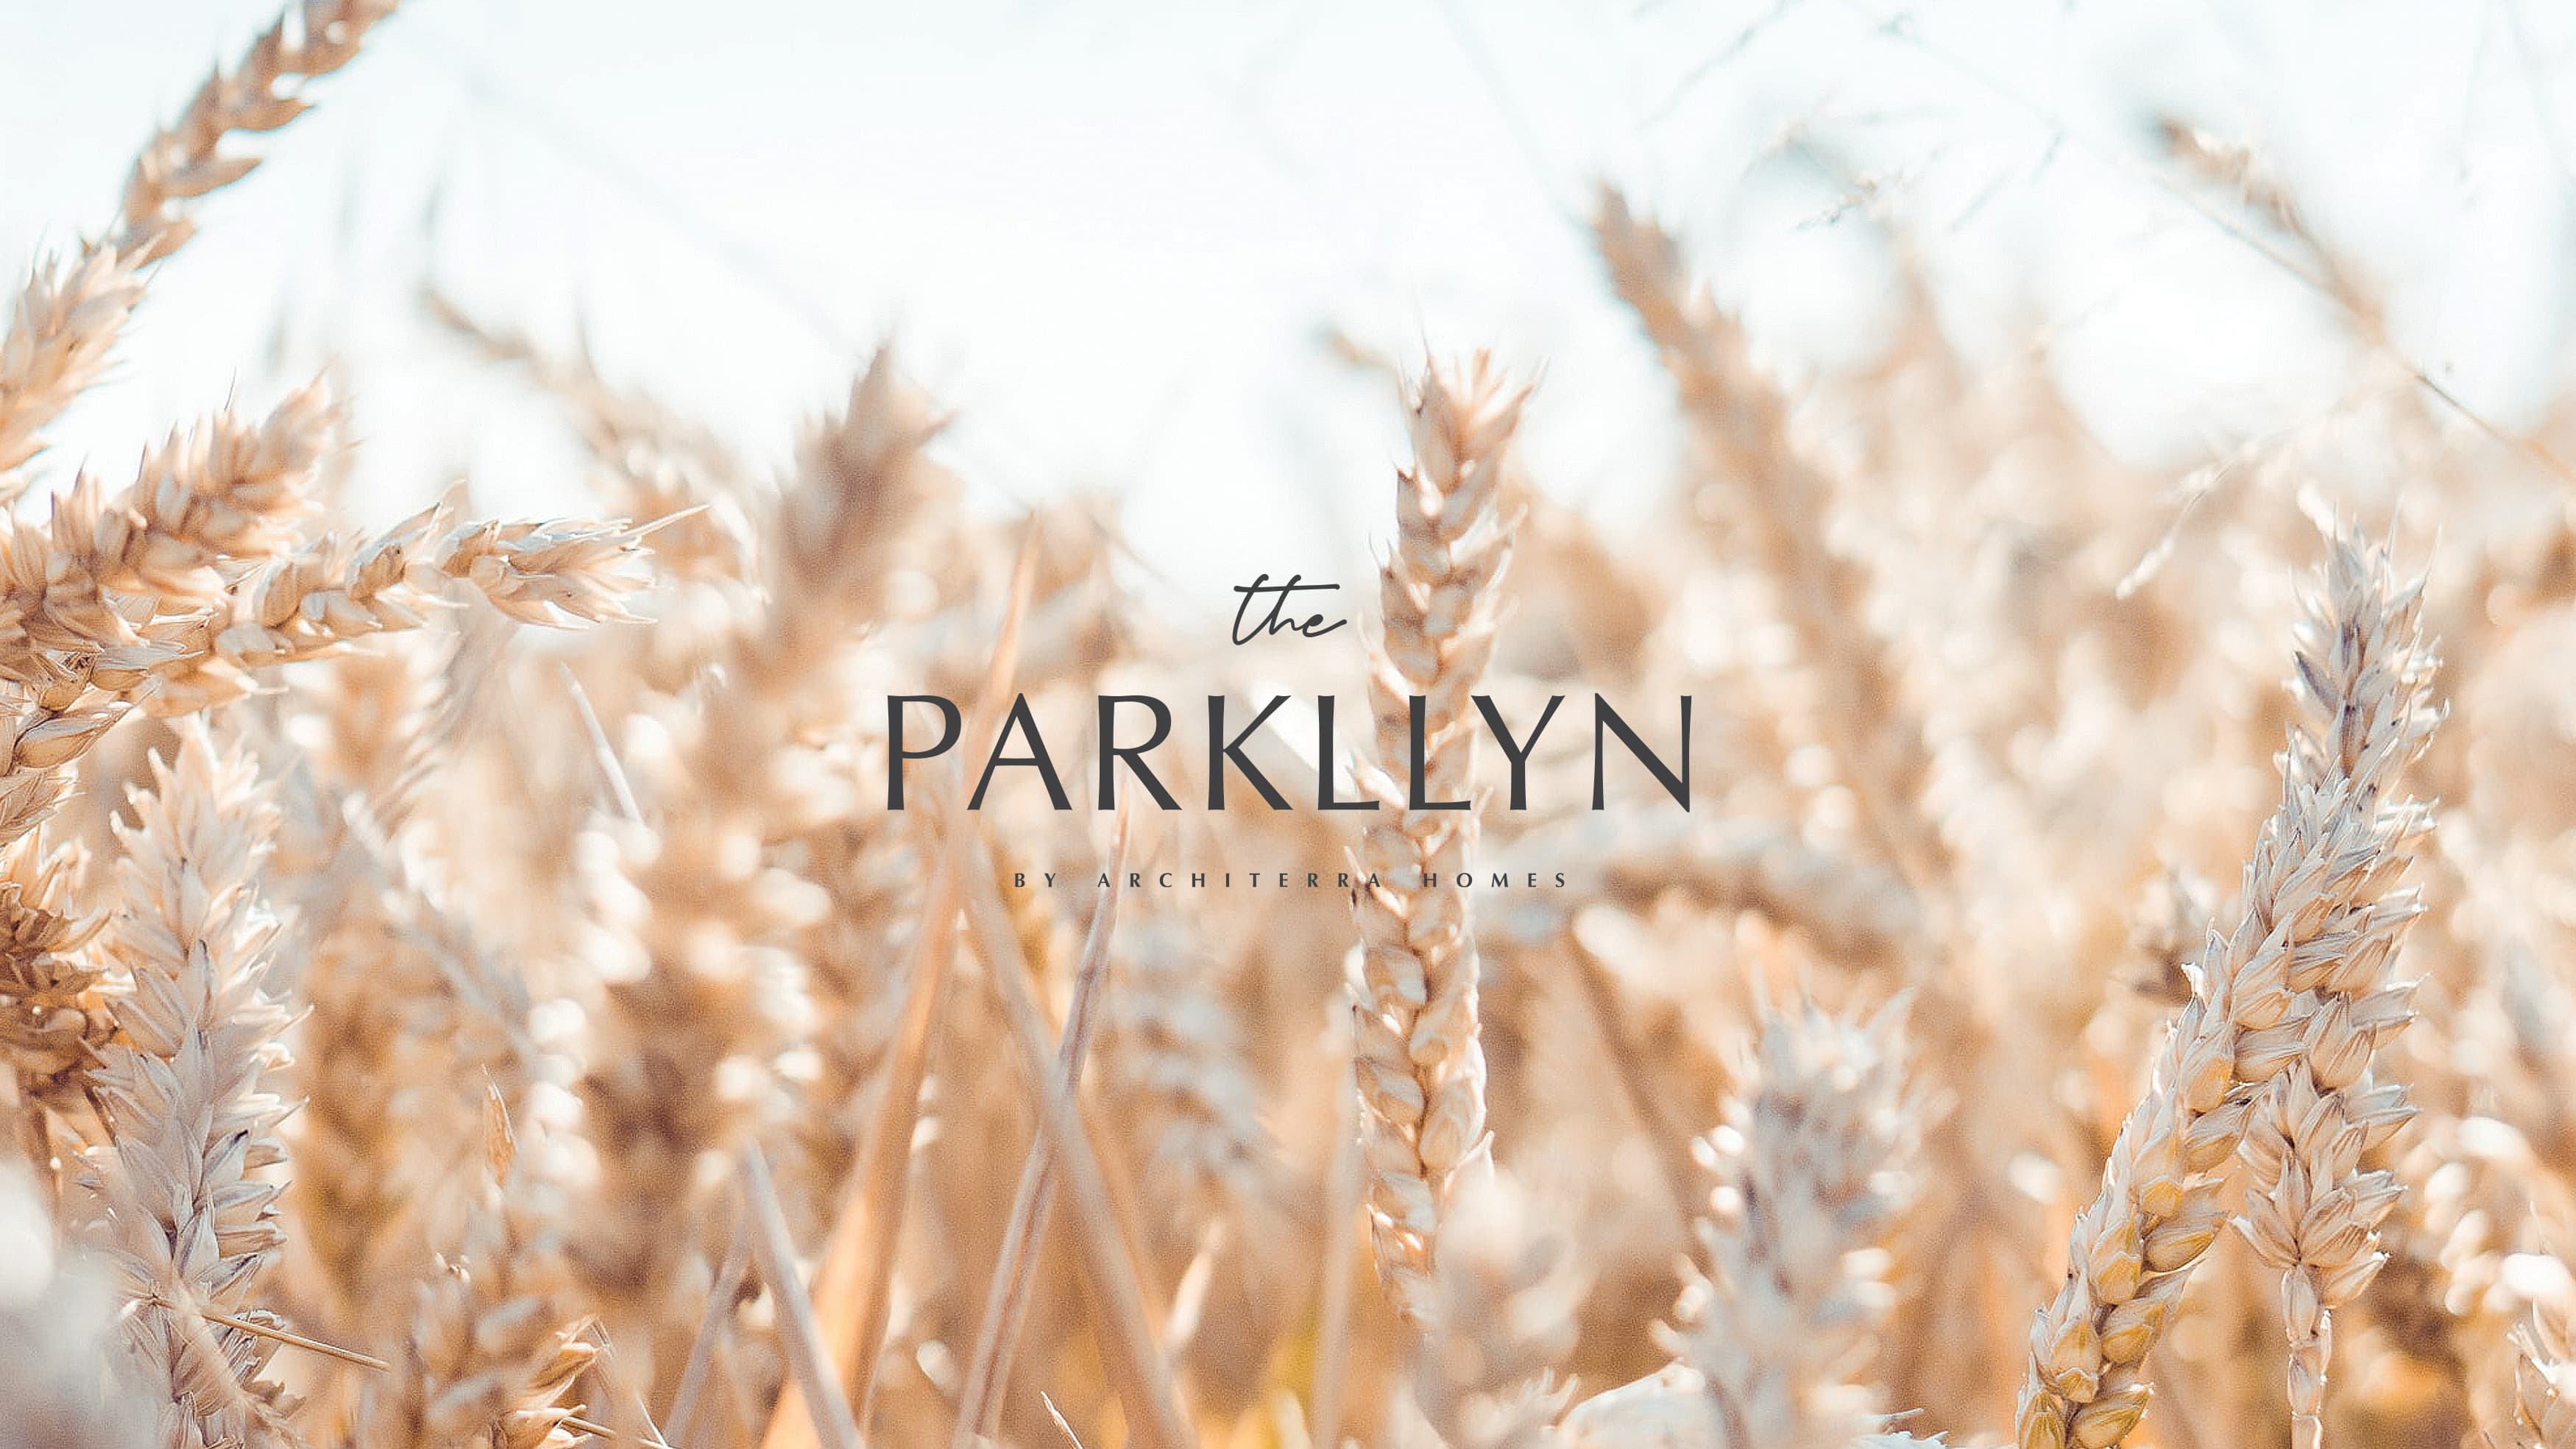 Image of a golden field of wheat and the logo design for The Parkllyn.